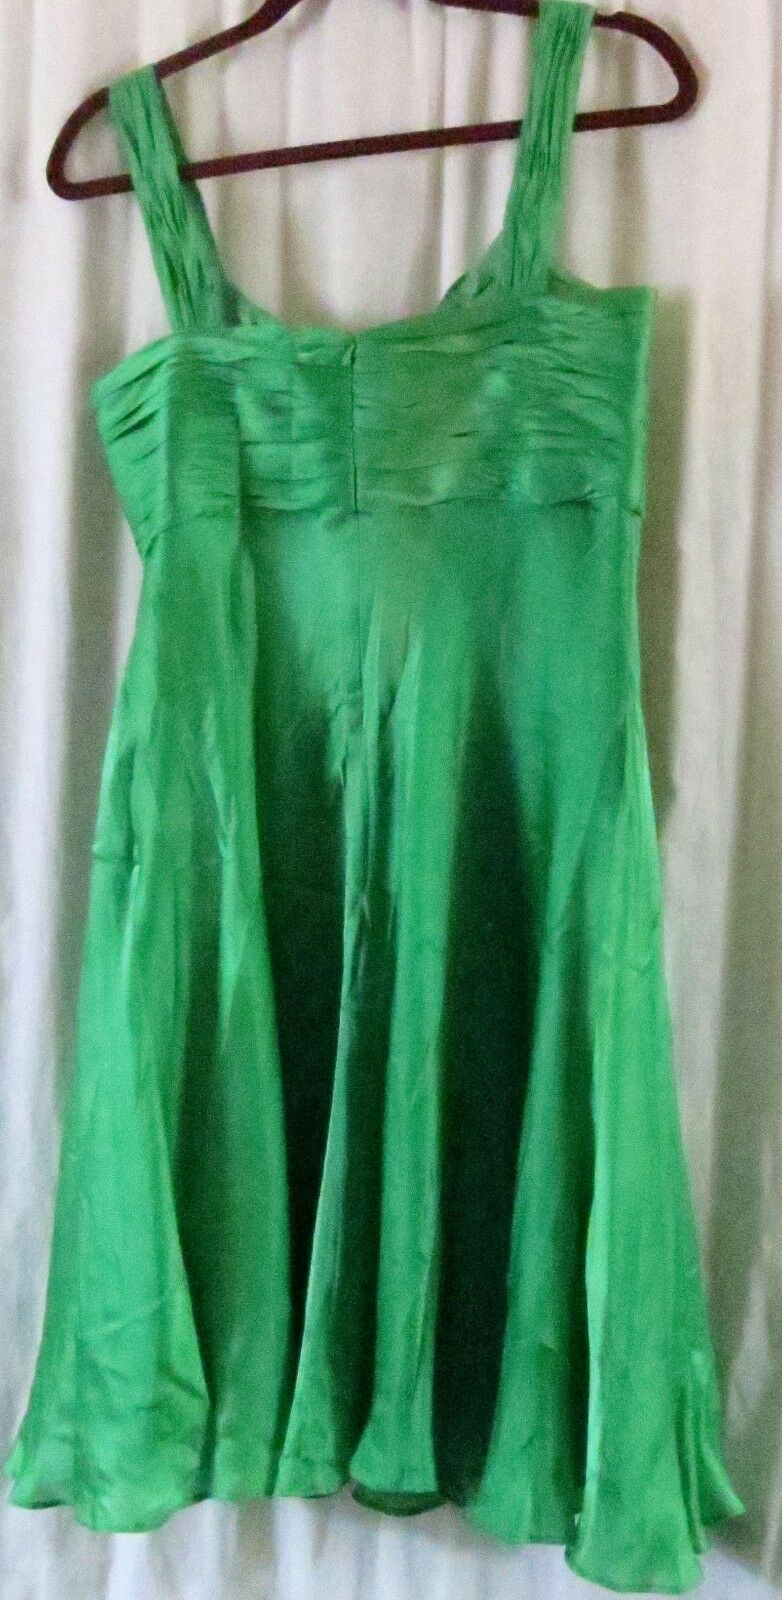 Anne Klein Dress 10 Green Strap V Neck Knee Length Cocktail Party Silk image 6